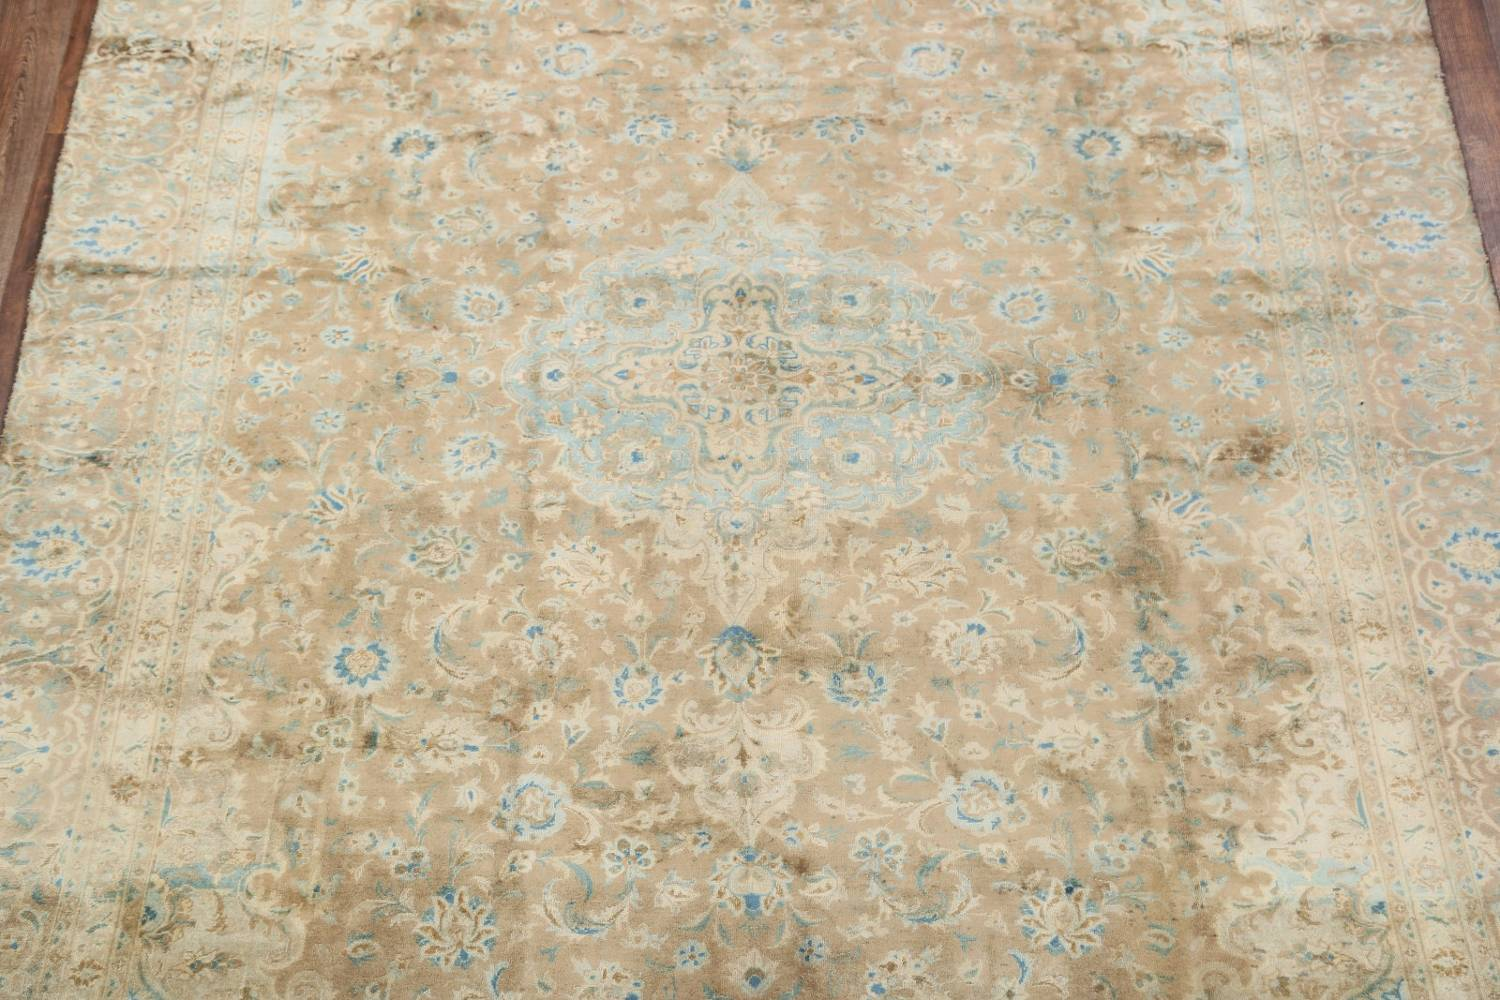 Antique Muted Distressed Kashan Persian Area Rug 9x13 image 3